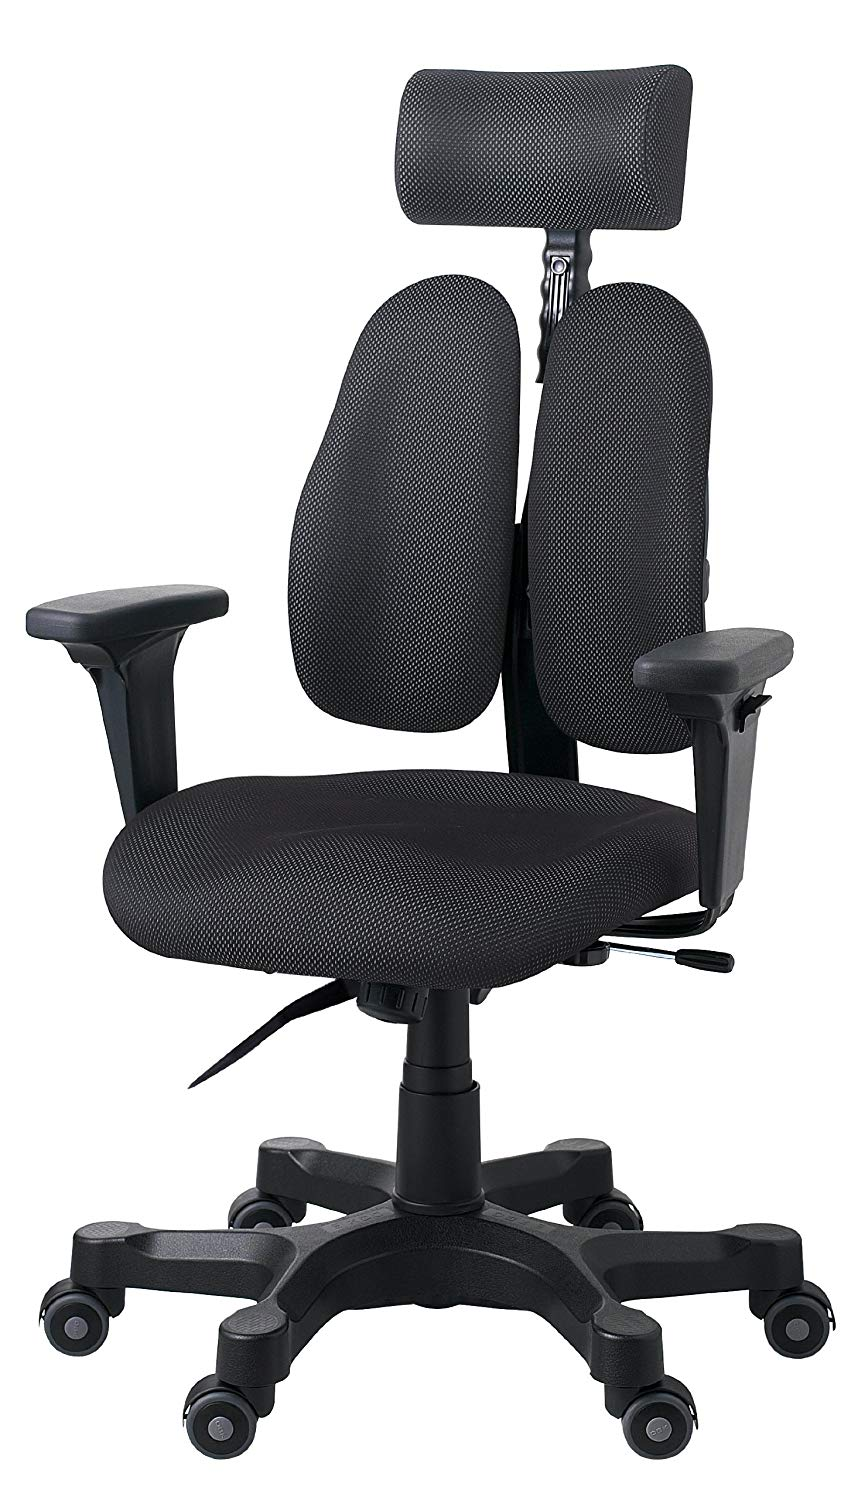 Best Computer Chairs For Long Hours Exercises To Offset